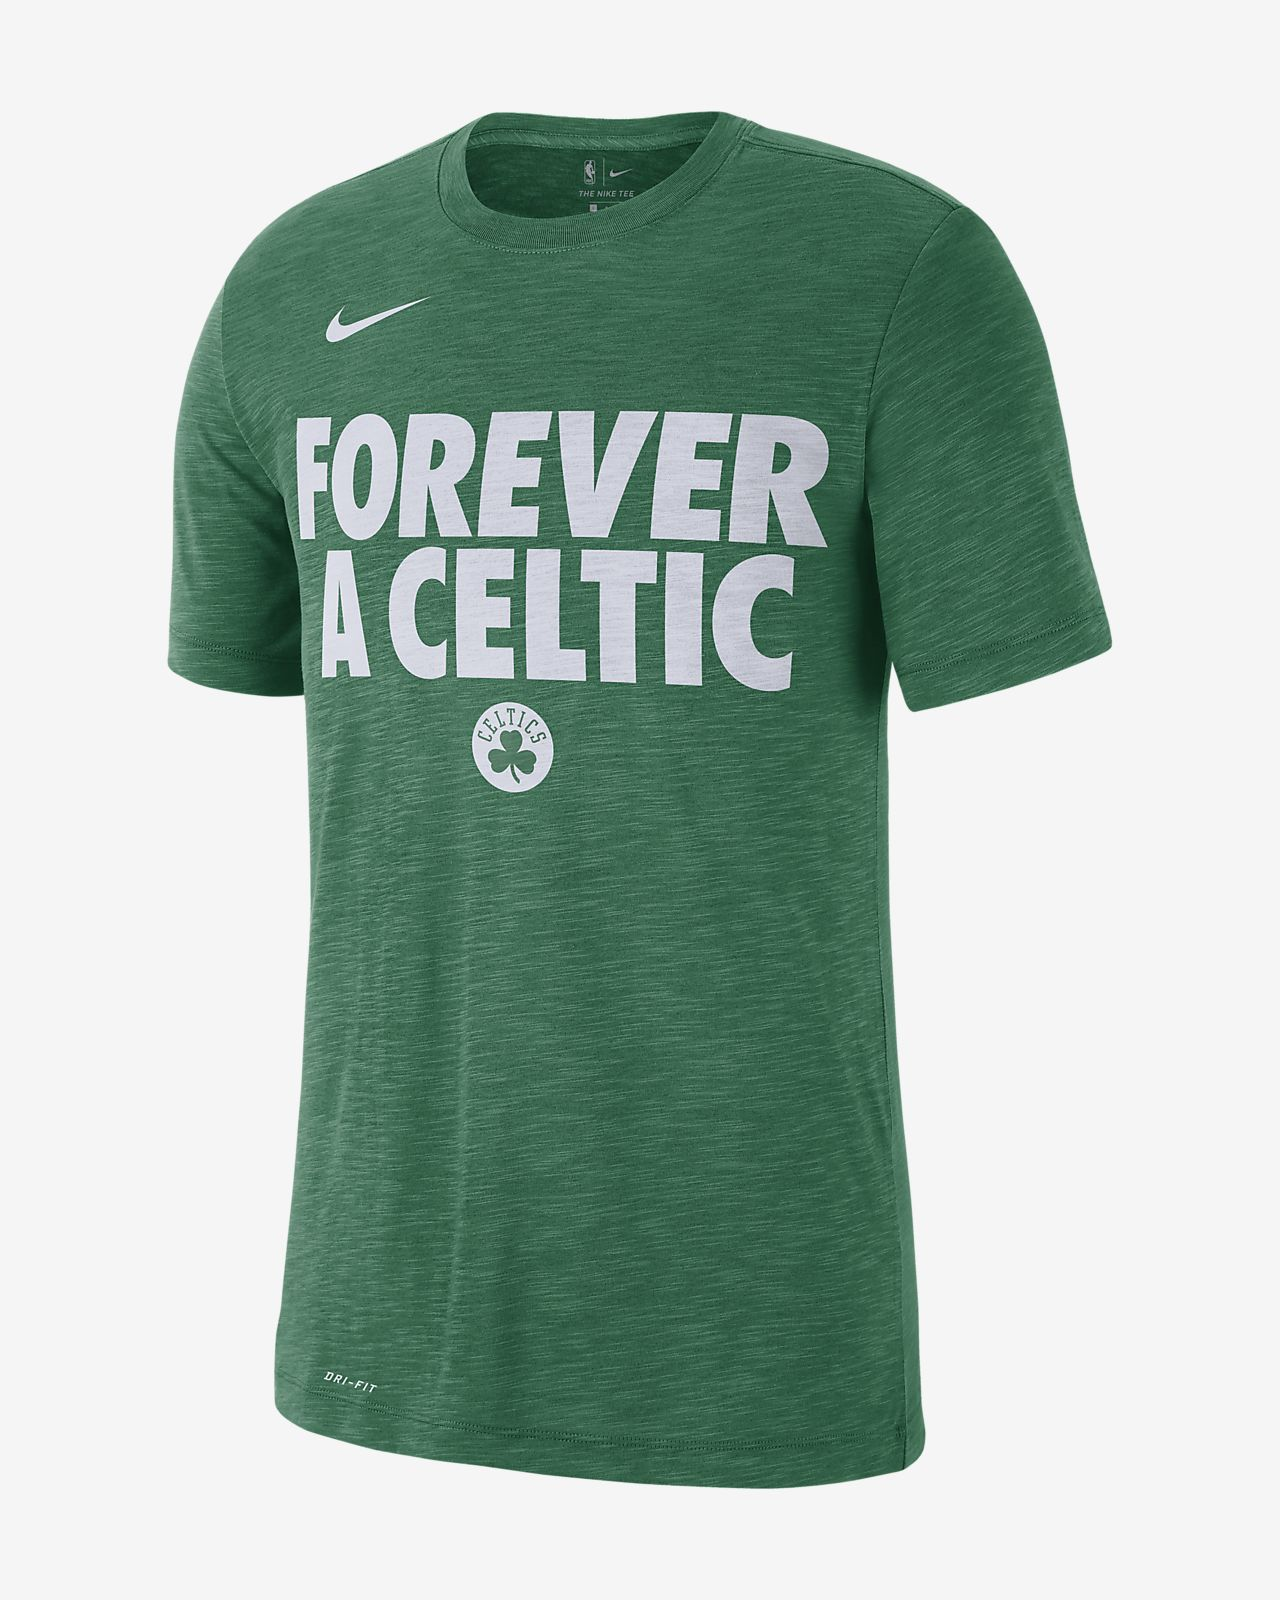 6d1ba325c Boston Celtics Nike Dri-FIT Men's NBA T-Shirt. Nike.com VN